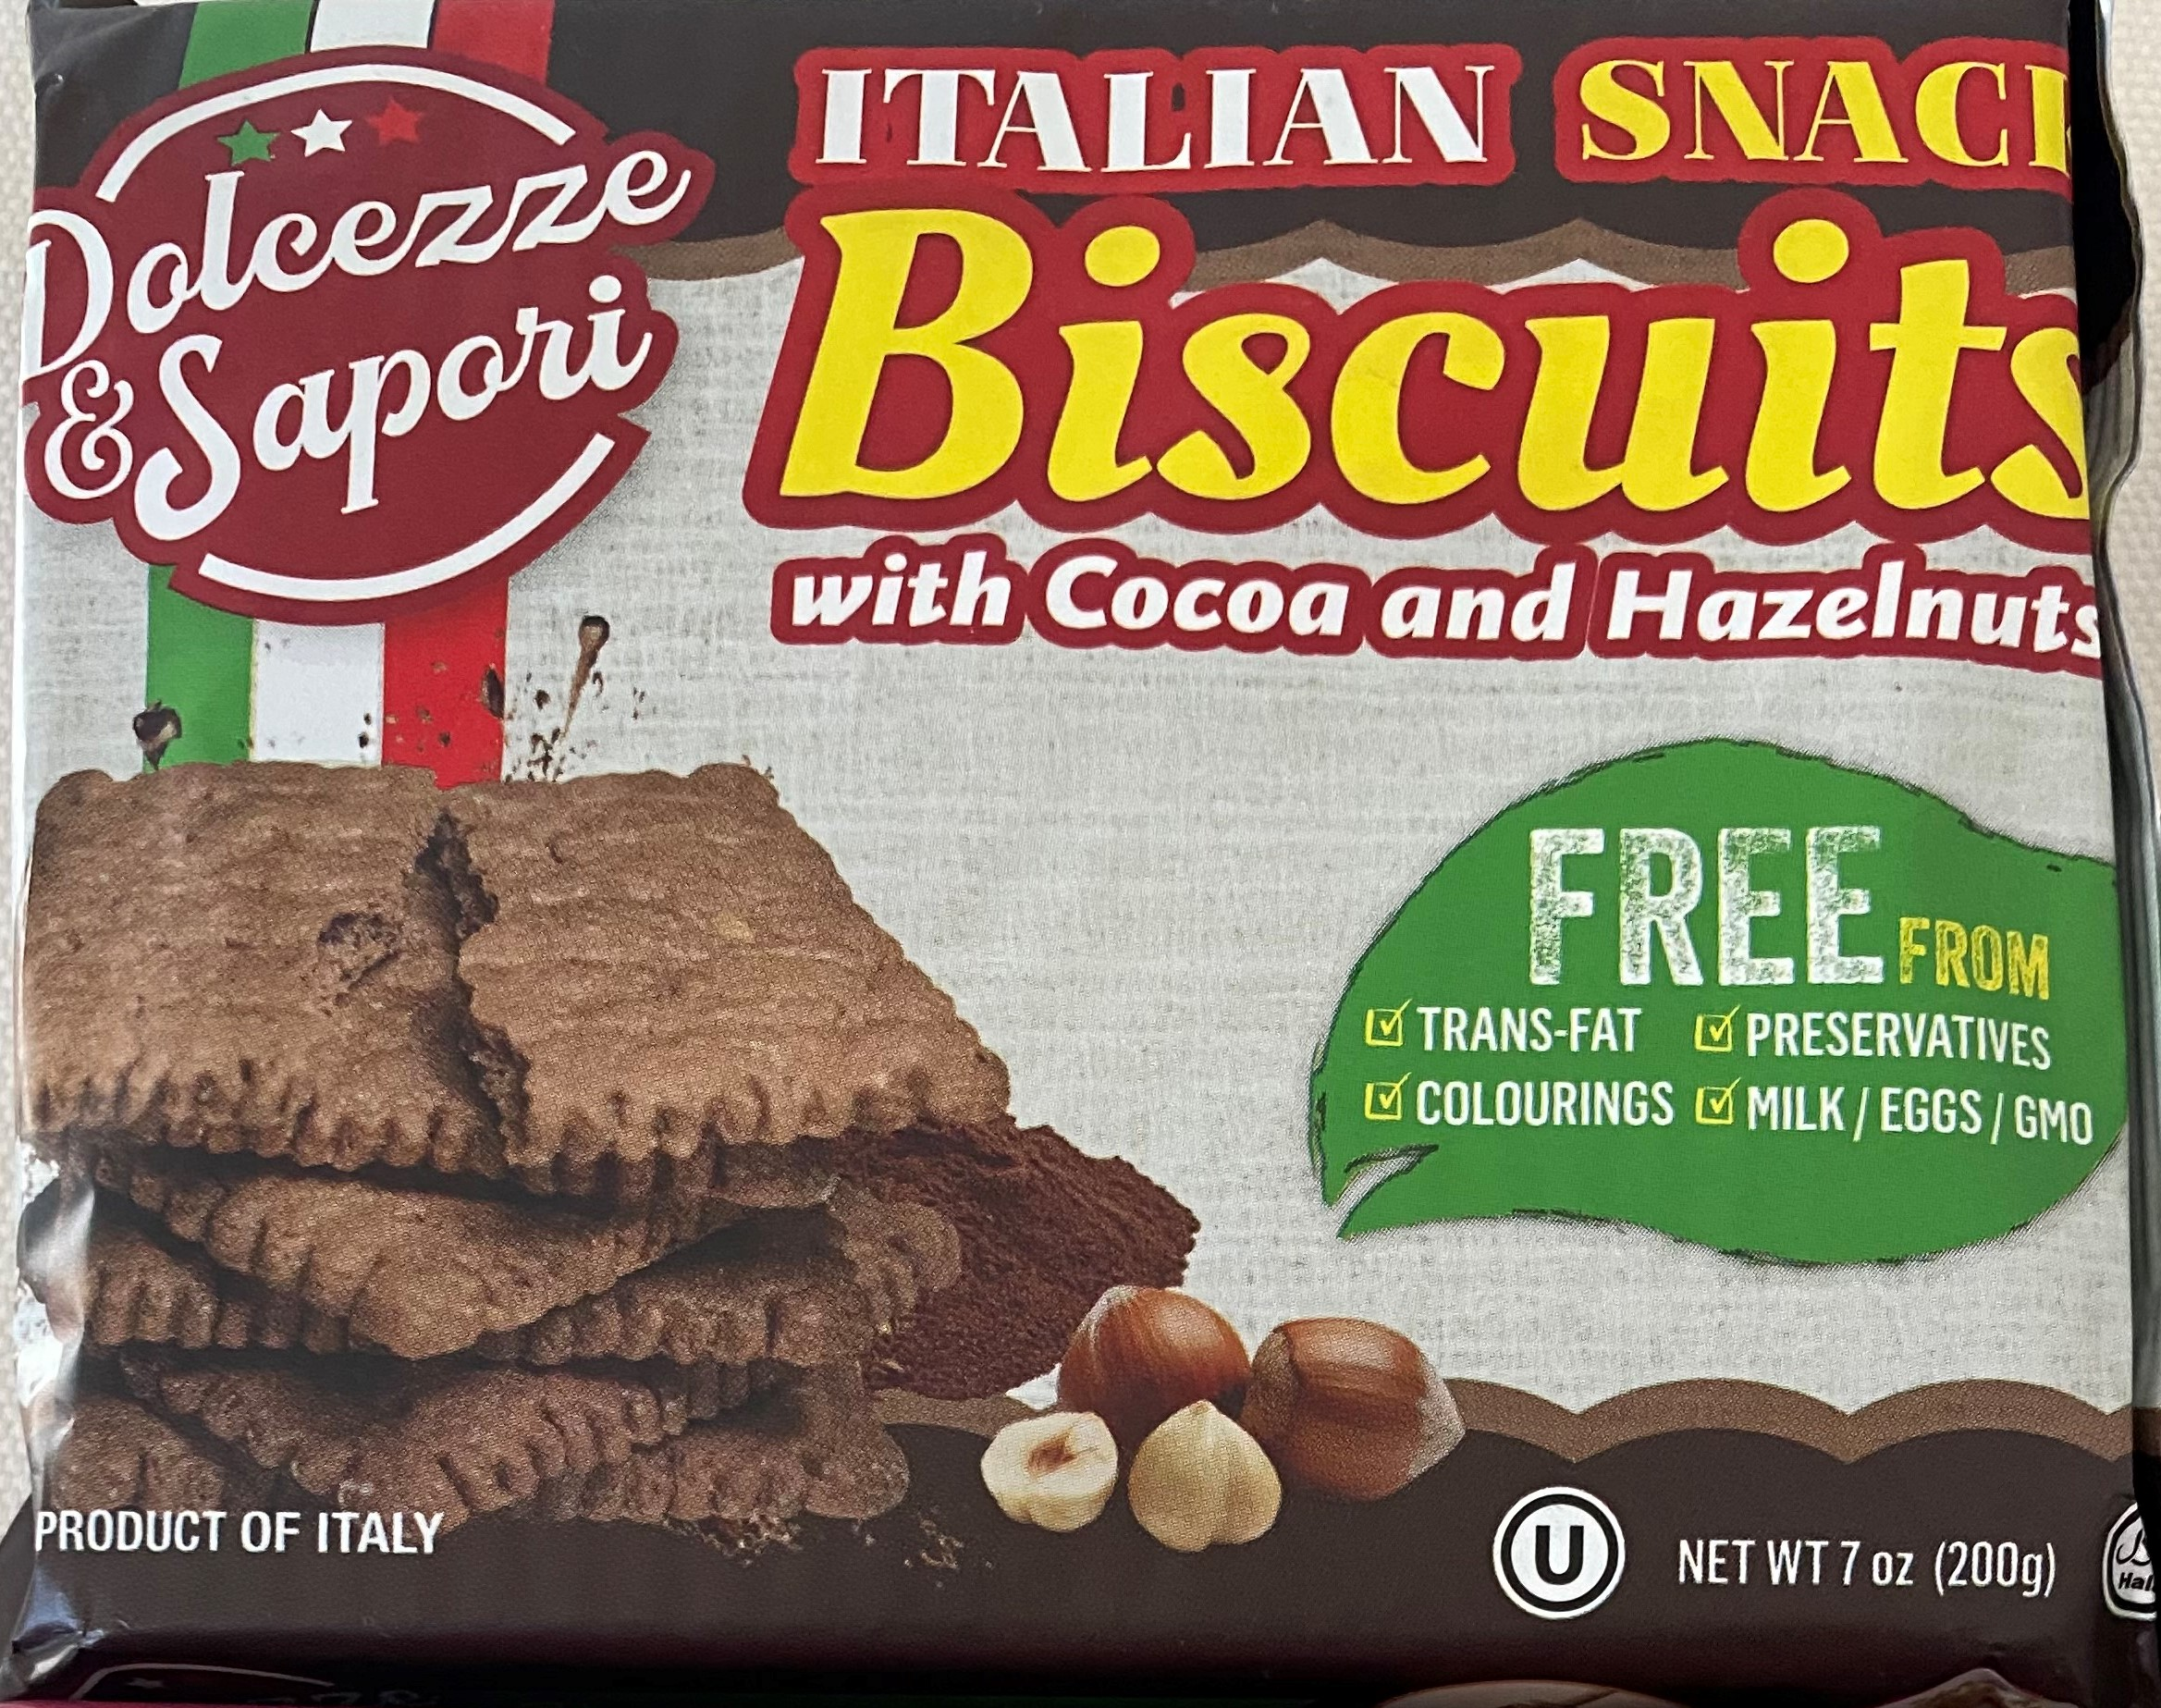 Dolcezze & Sapori Italian Snack Biscuits with Cocoa and Hazelnuts